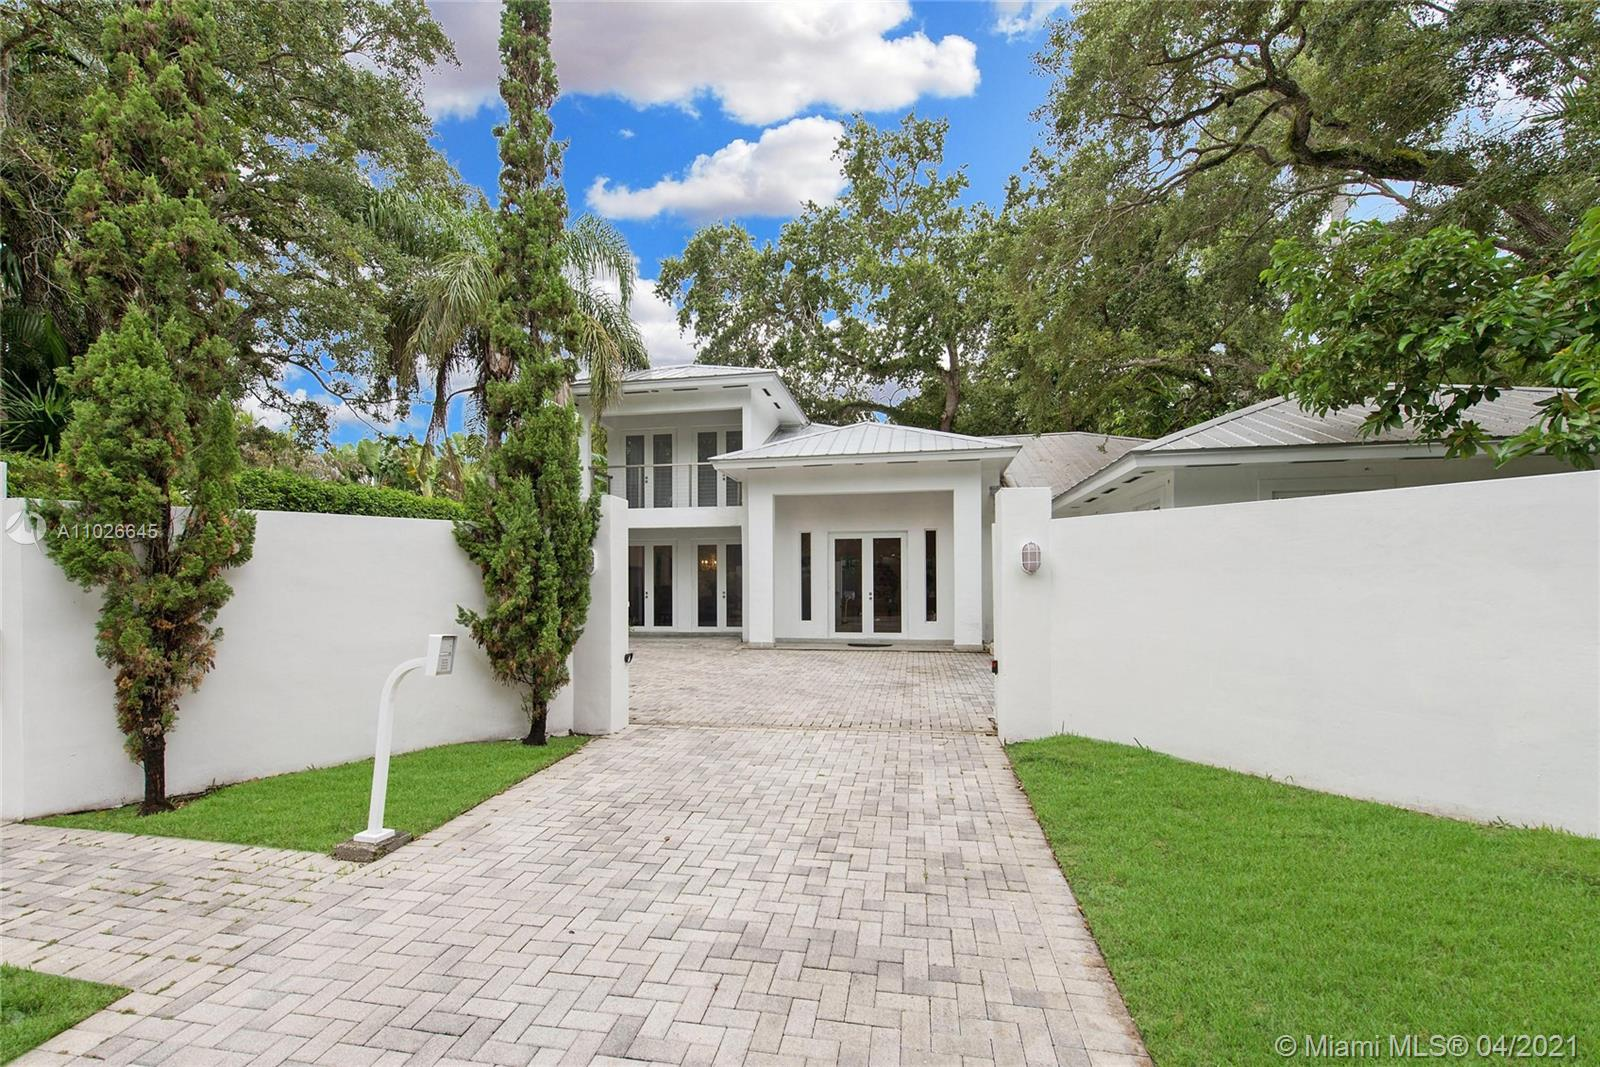 Lovely, walled & gated estate in lush South Coconut Grove. Custom built in 2004 by the current owners. Light-filled, open living spaces w/ wood-beamed vaulted ceilings, stone flooring & french doors throughout that overlook the tropical garden (10,422 SF lot) surrounding the home. Stunning kitchen features wood cabinetry, granite countertops, oversized built-in Subzero refrigerator, gas range & breakfast room. Luxurious master suite w/ sitting area and large bath with soaking tub & frameless glass shower. Ideal layout offers 1st level - 3 BR/2.5 BA (including the master) + office. 2nd level -1BR/1BA + bonus room, easily converted to a 5th BR. Ultra-private outdoor spaces feature covered terrace w/ fireplace & oversized pool for year-round outdoor living. Walk or bike to the village center